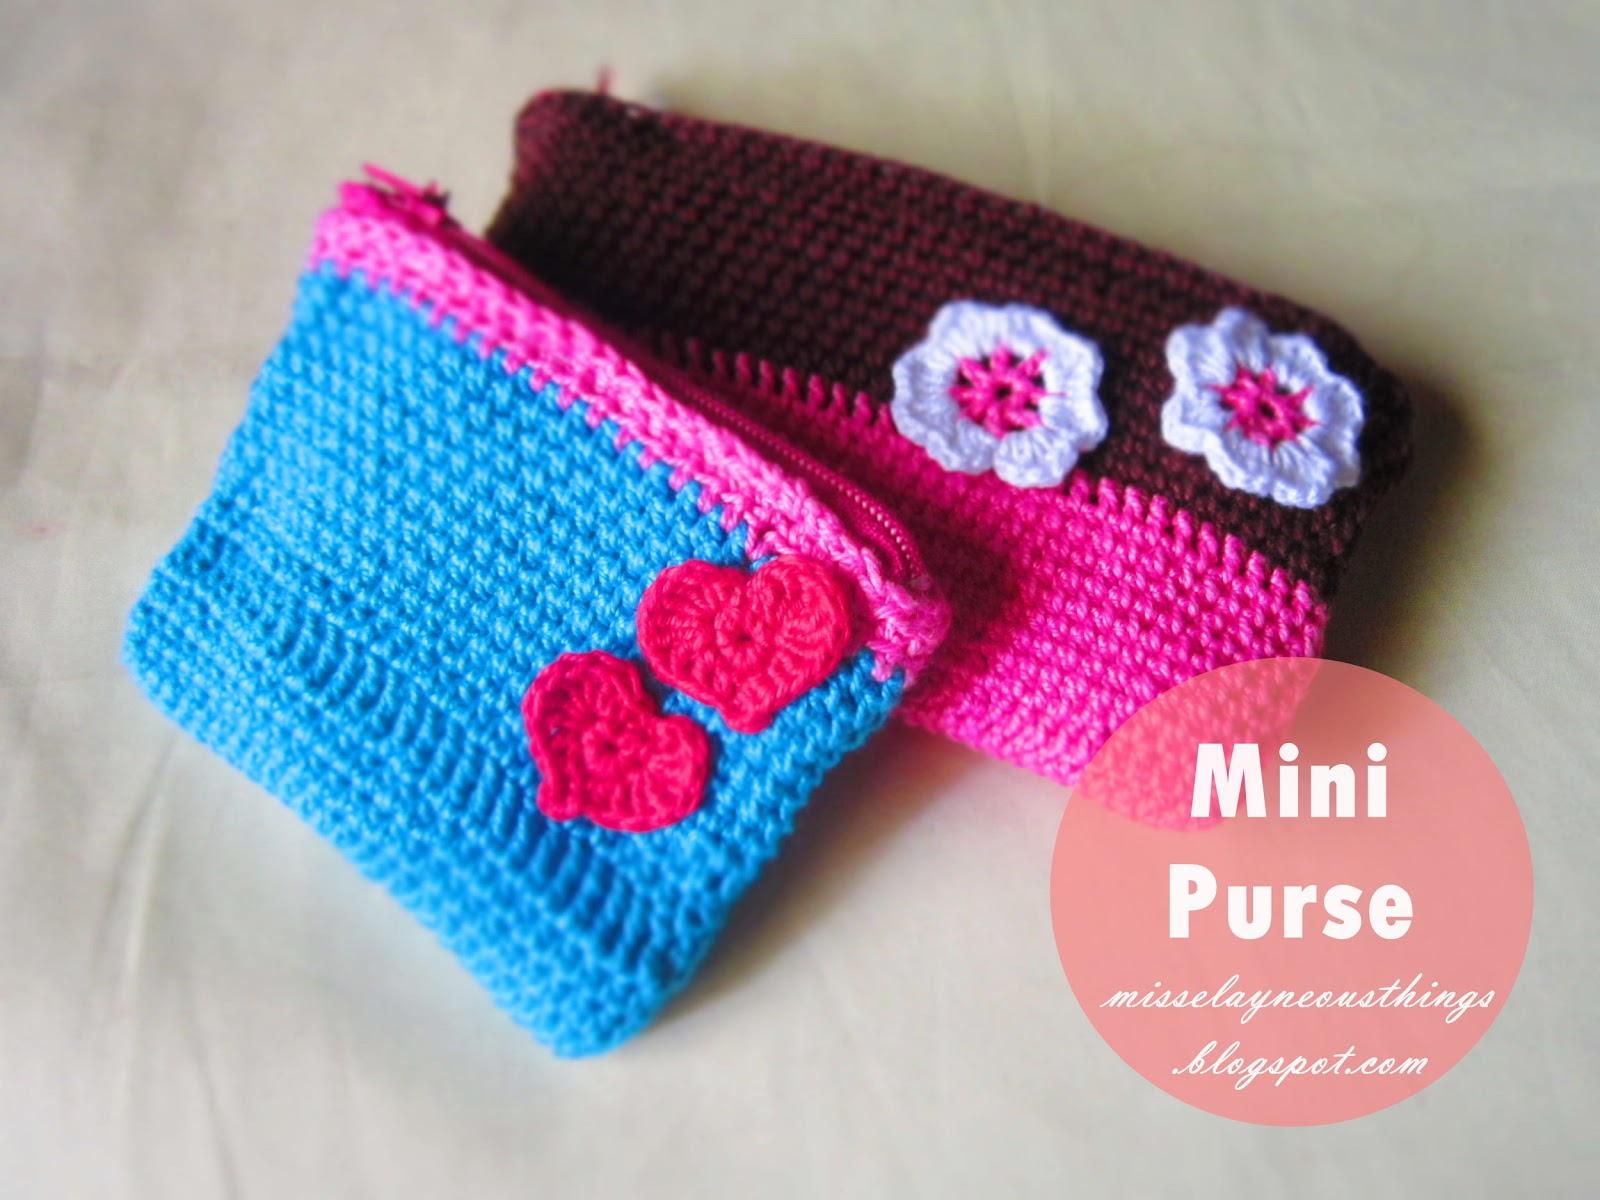 Mini Crochet Bag : ... Miss Layne Friday, November 16, 2012 DIY crafts , my crochet patterns